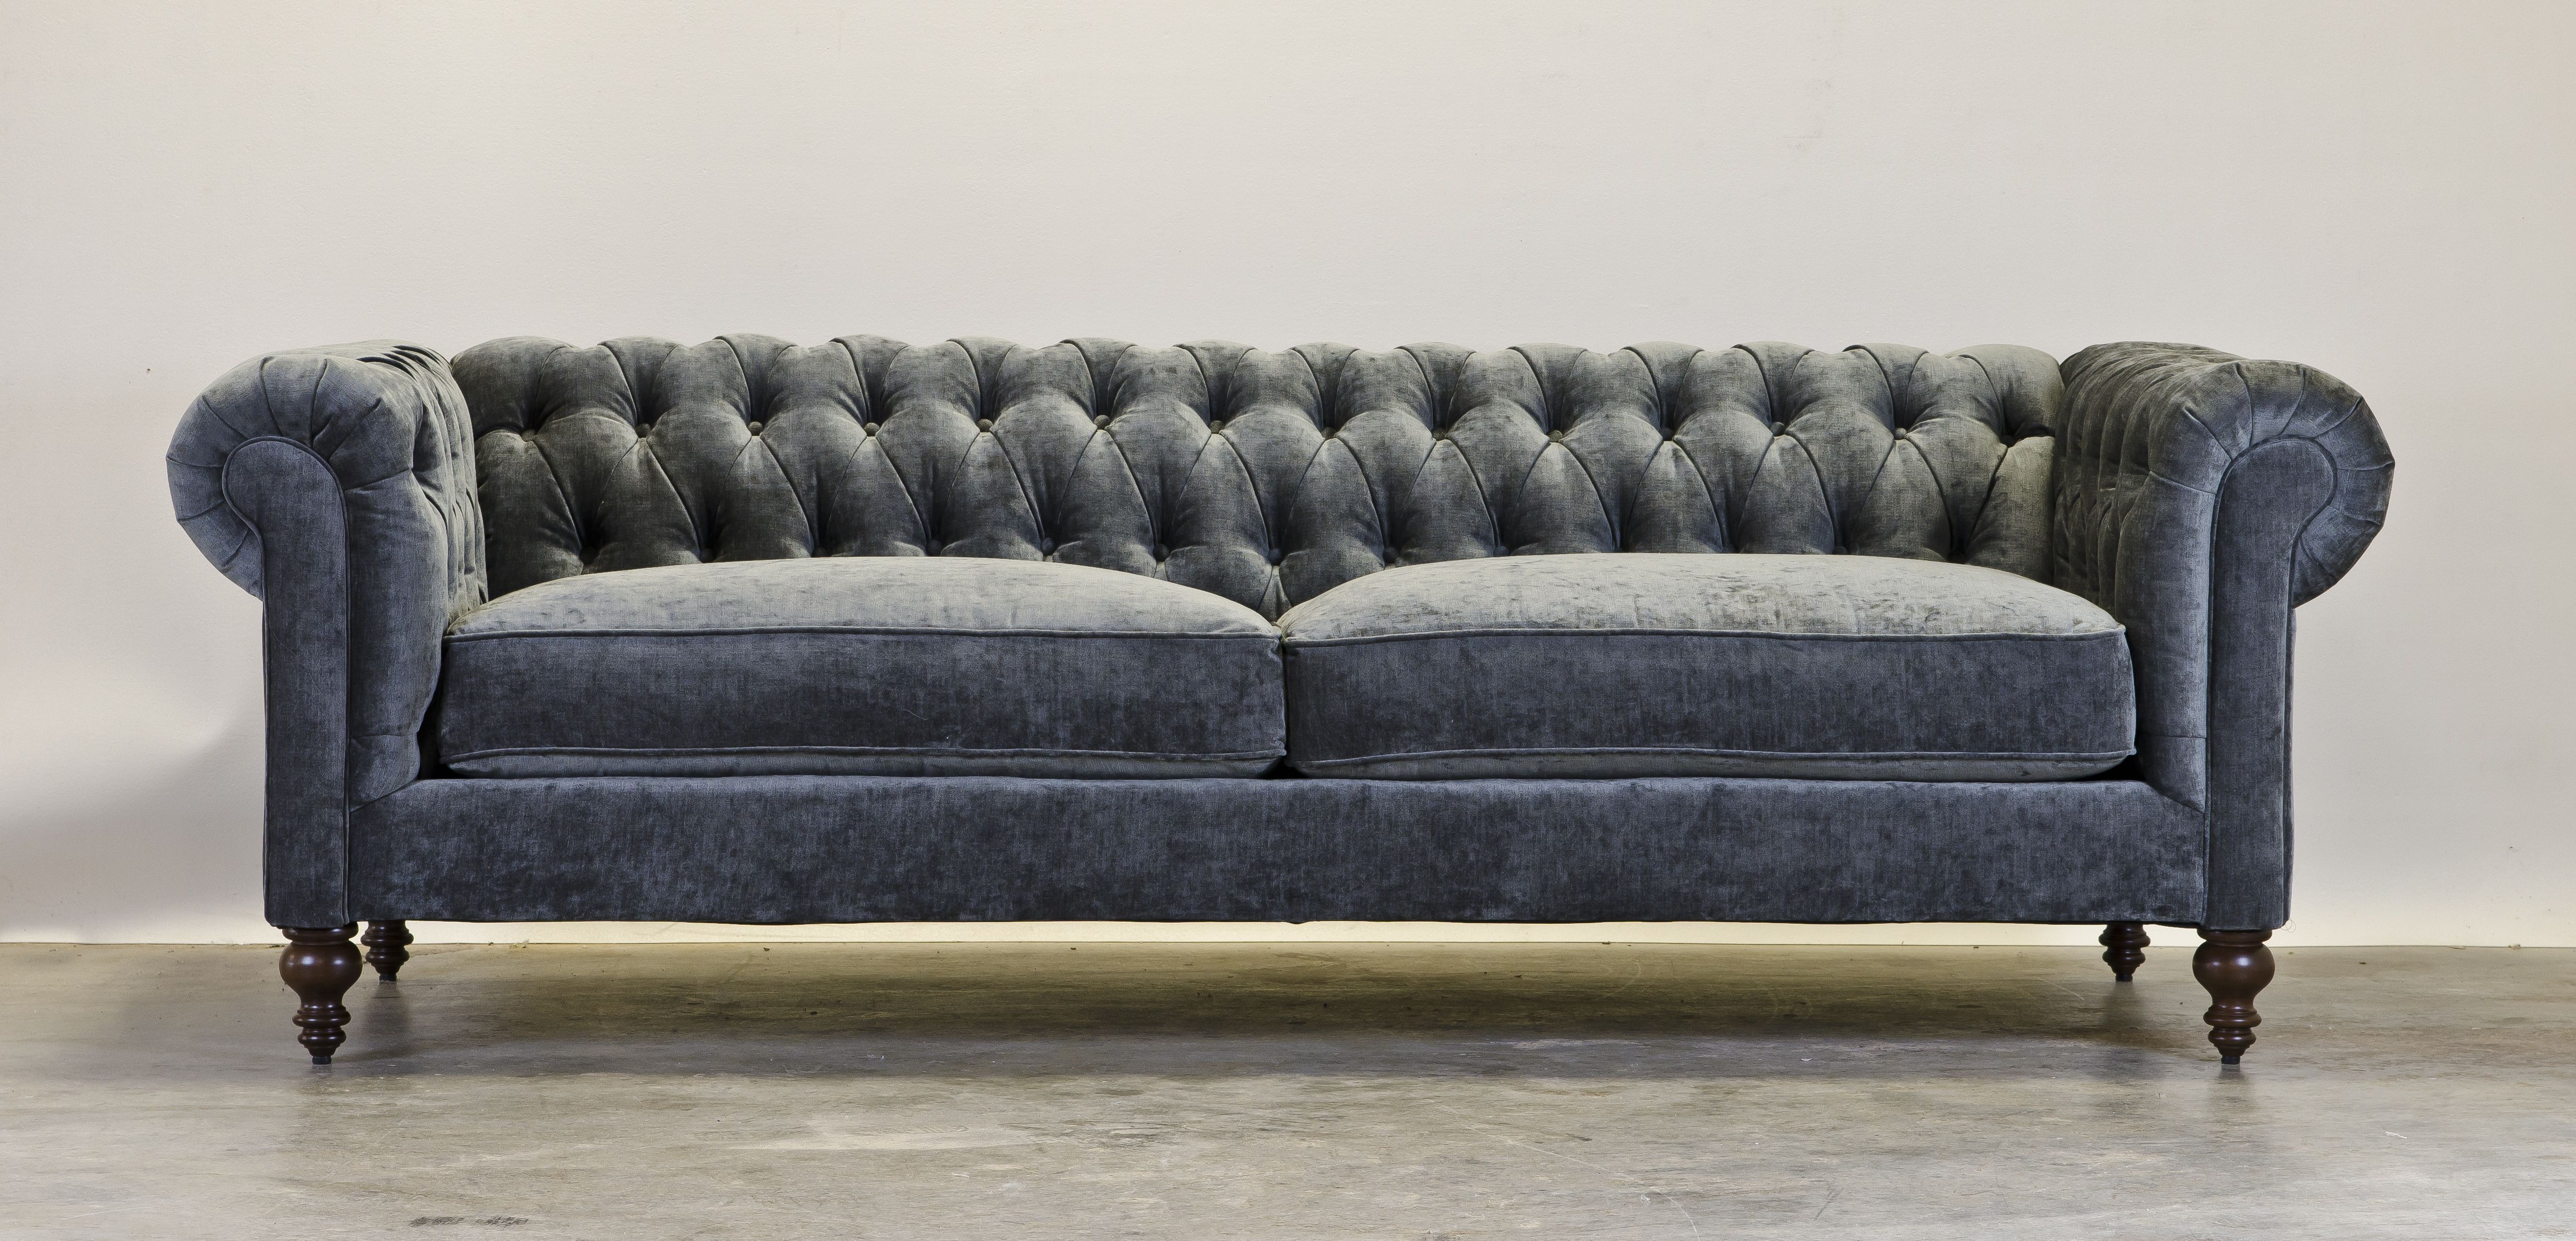 Chesterfield With A Beautful Blue Gray Palm Chenille Fabric